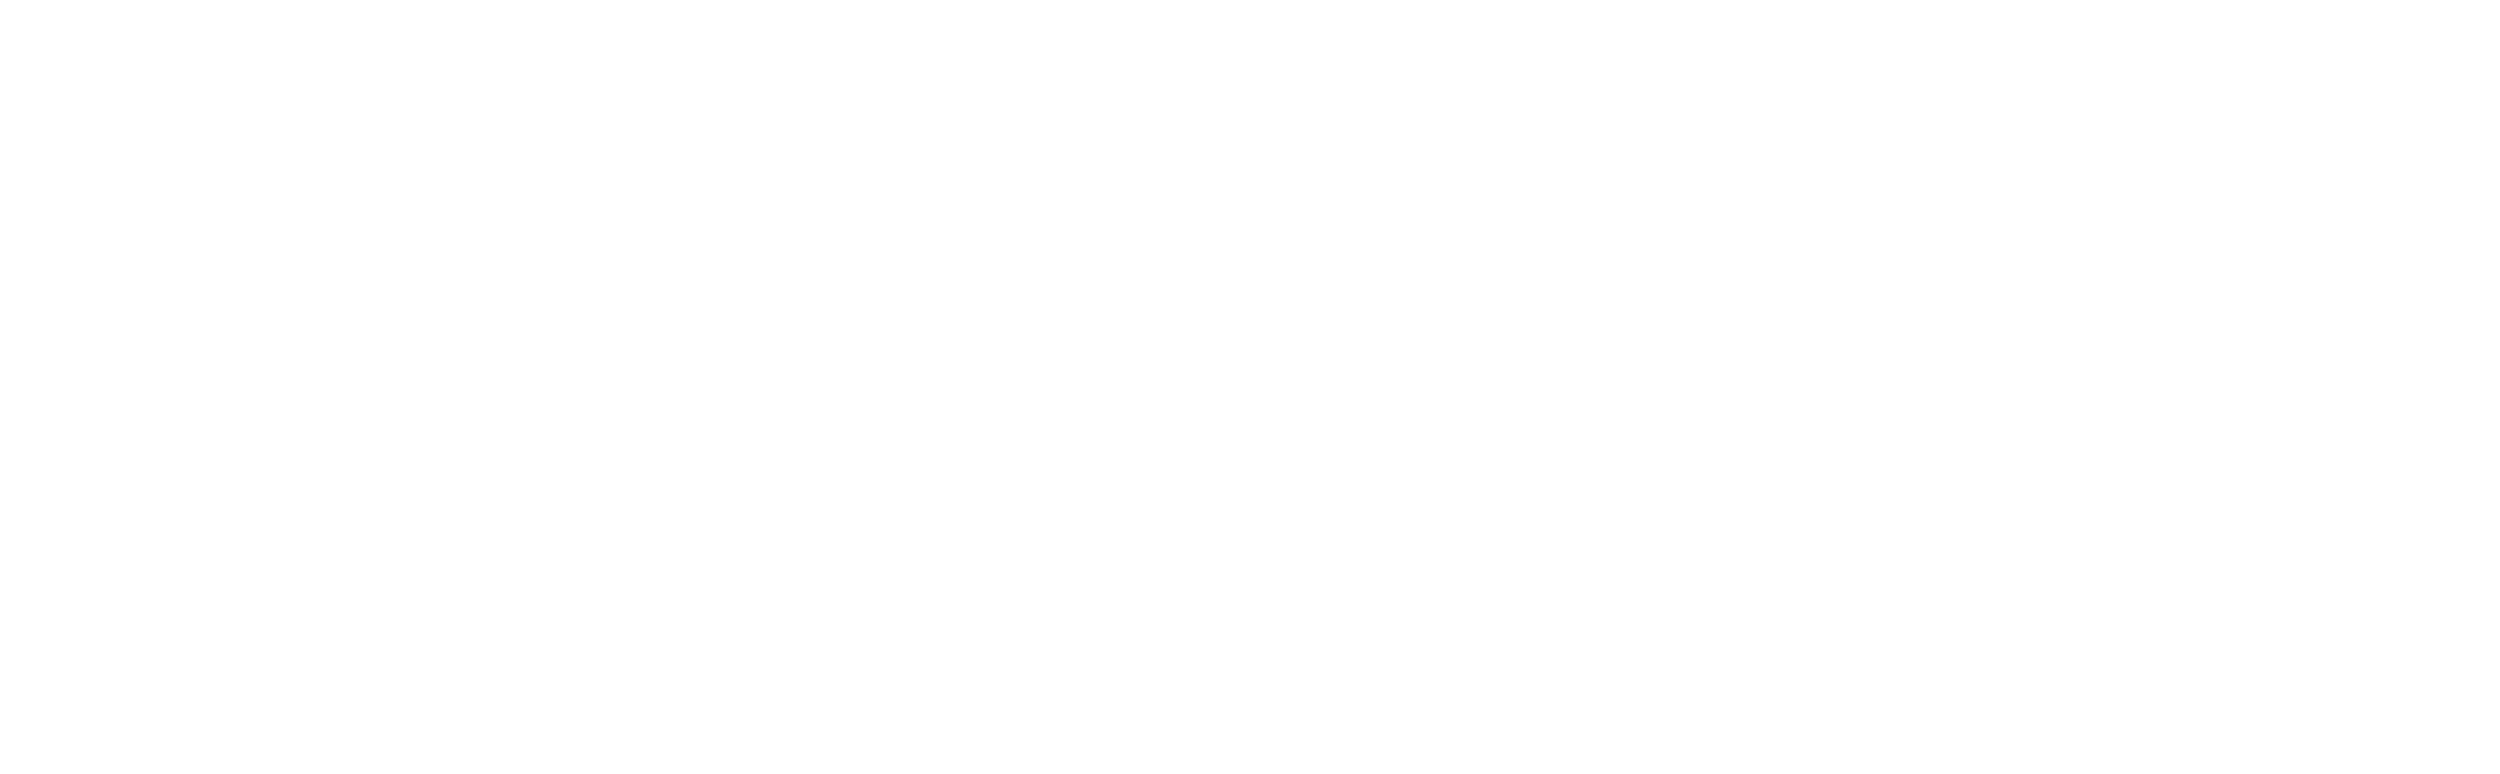 Music Highlight-logo-white (2).png